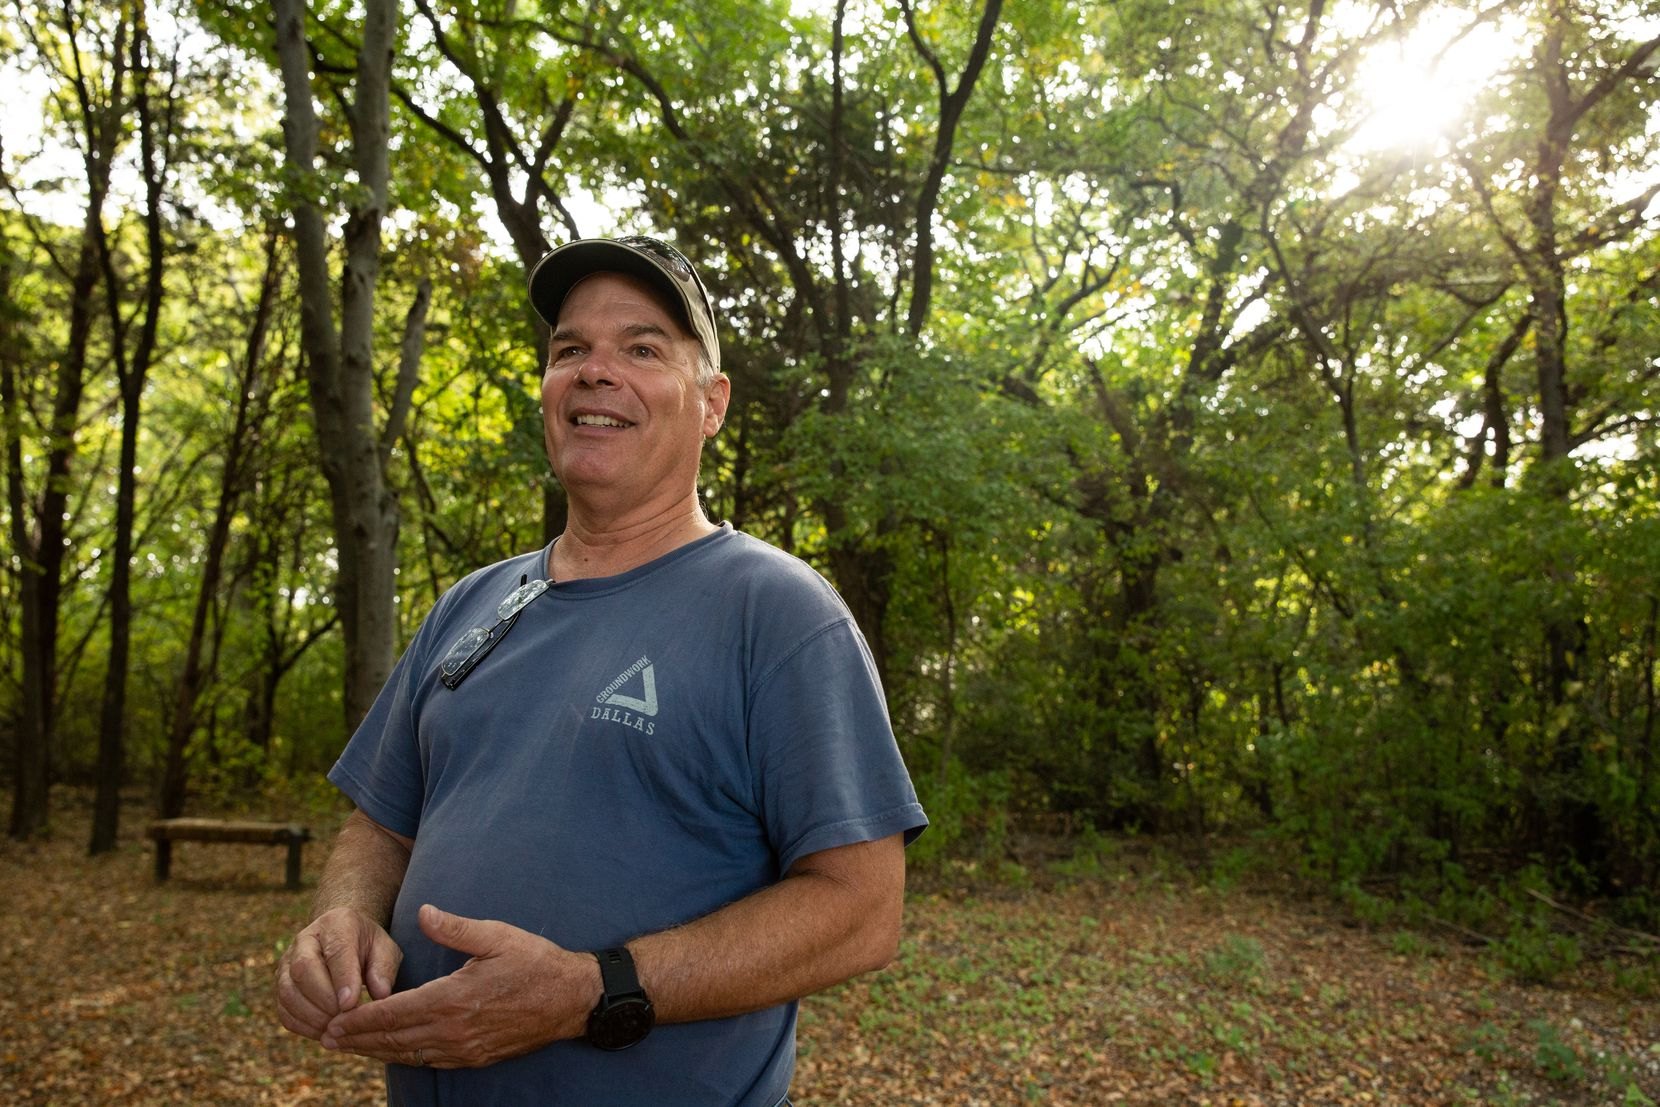 """Rick Buckley is executive director of Groundwork Dallas and, like all the nonprofit's staff, a """"boots-in-the-dirt"""" employee. Groundwork Dallas' mission is to develop recreation areas in the Trinity River corridor and to teach youth to become future stewards of the environment."""